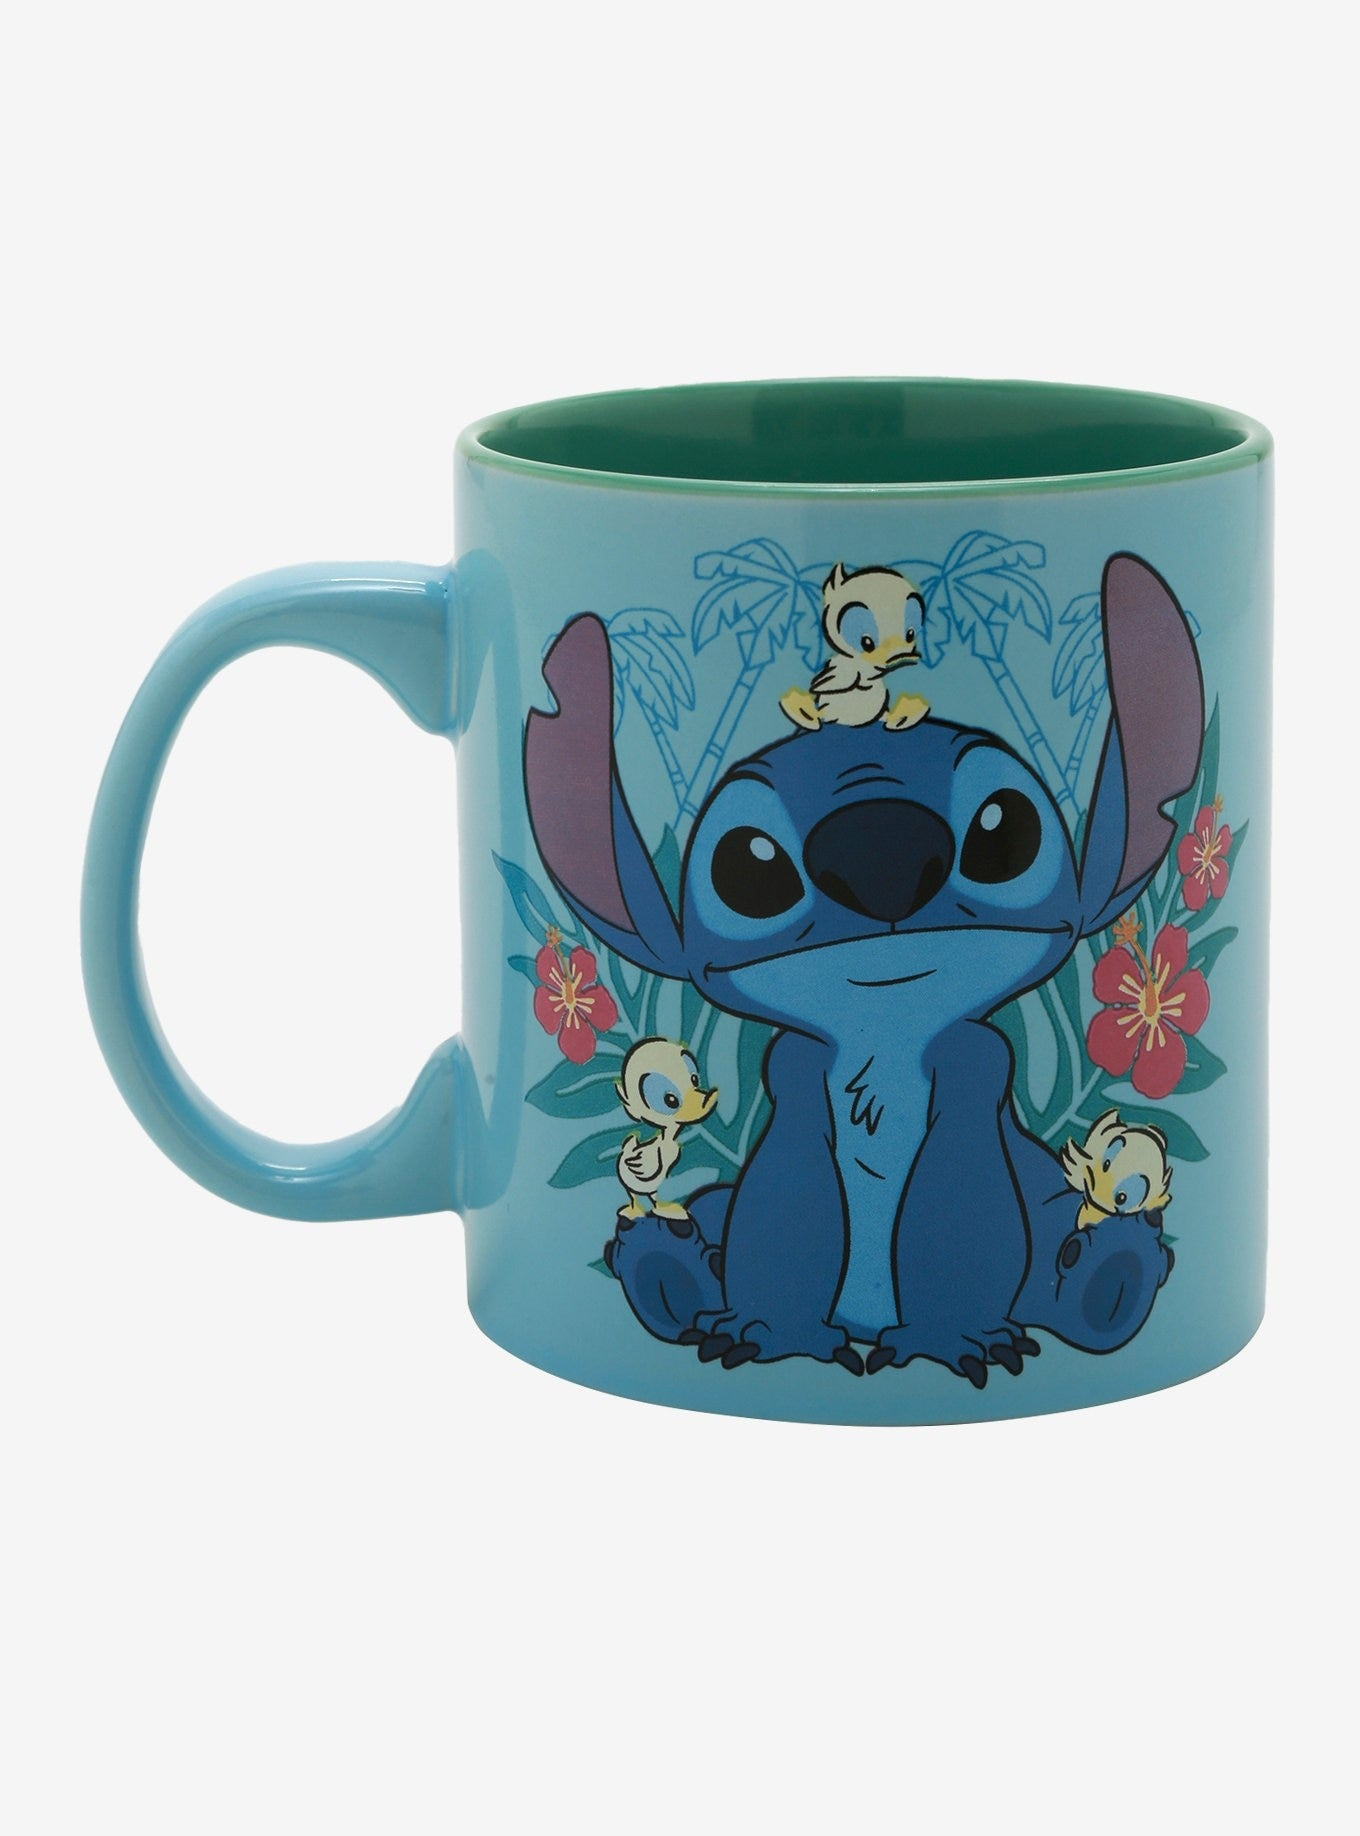 DISNEY LILO & STITCH DUCKLINGS MUG